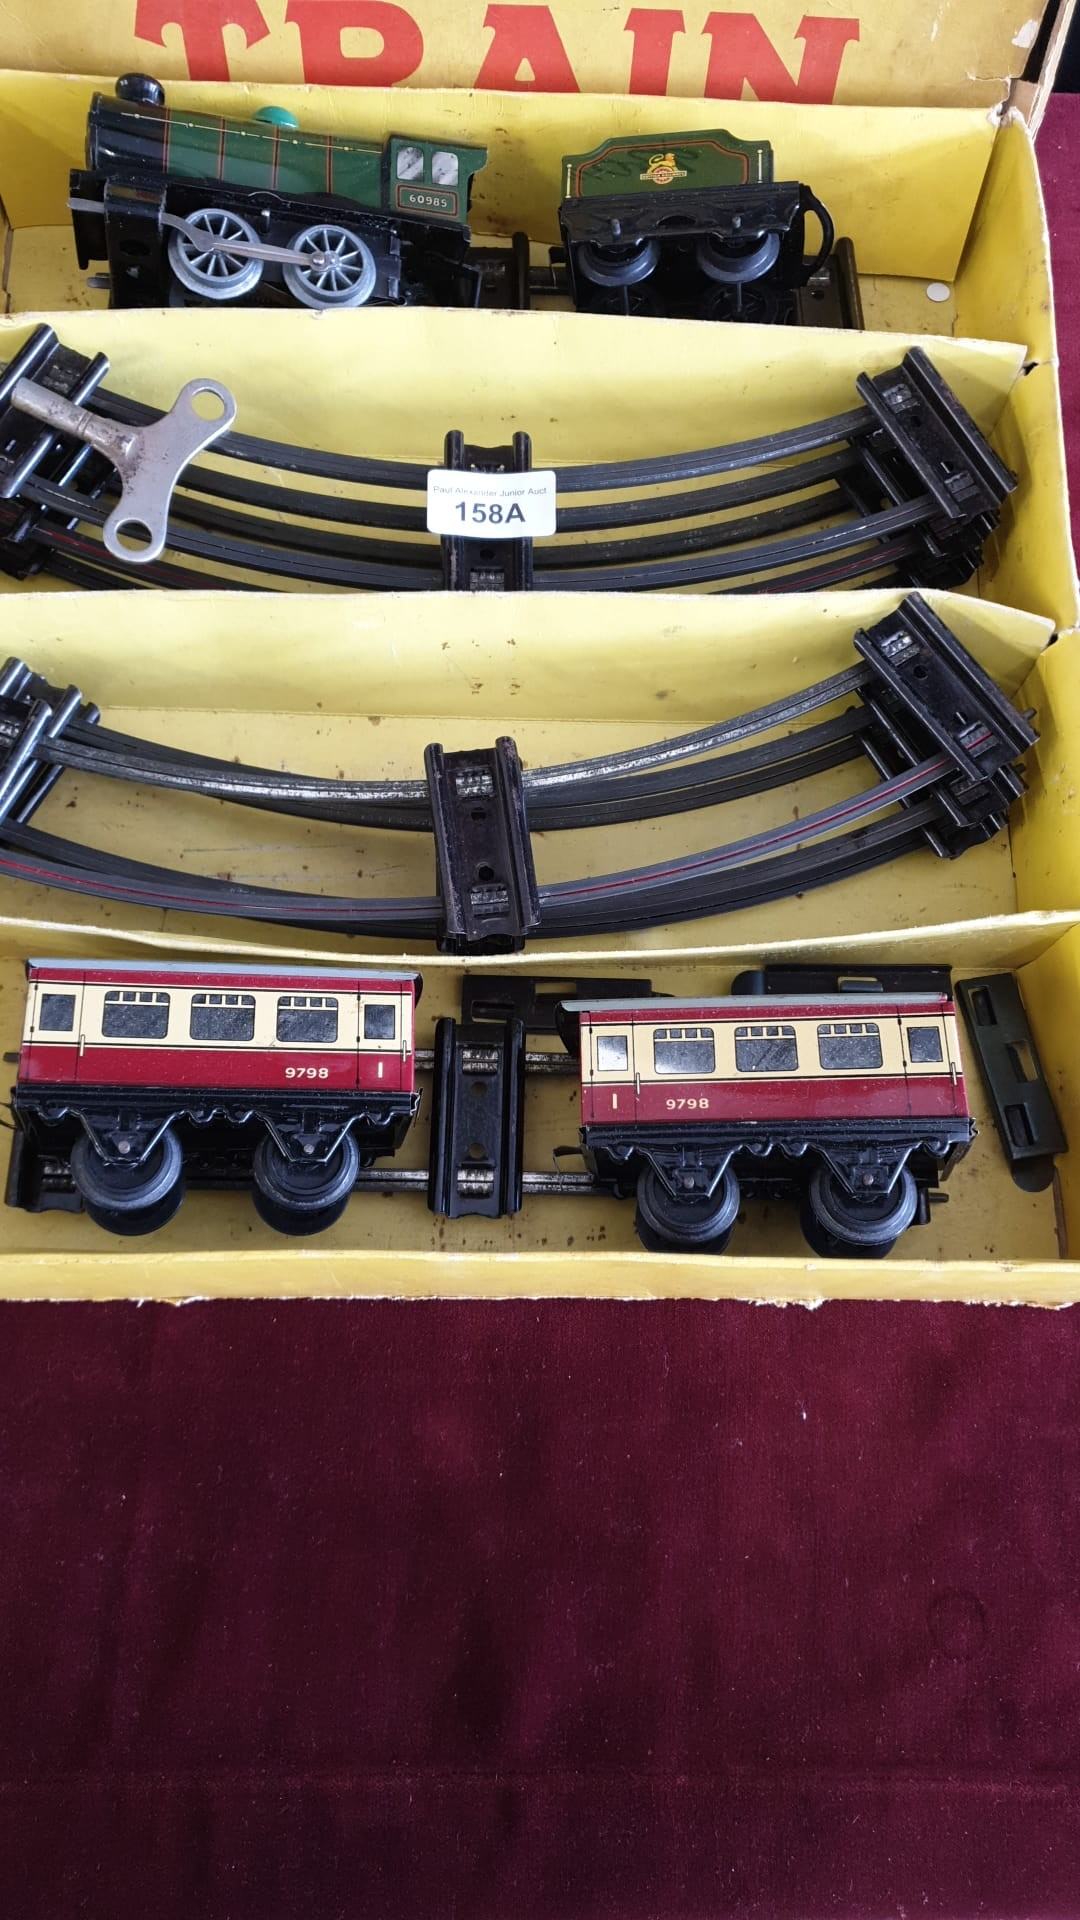 Boxed Horby O gauge clock work train set with track with original box complete with key. - Image 3 of 3